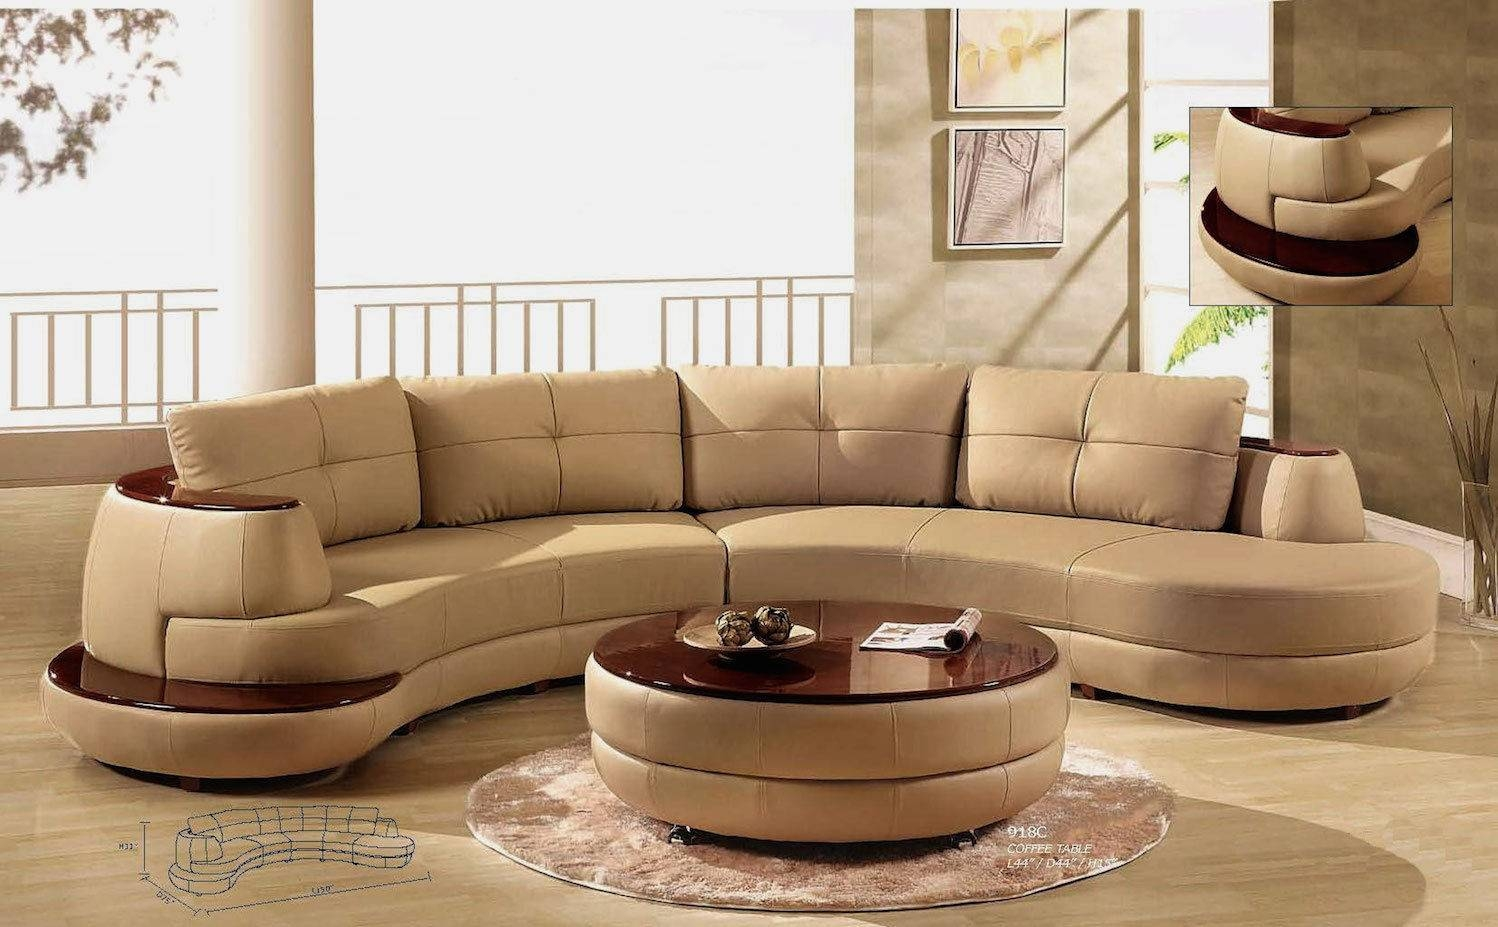 Sofa : Cheap Cool Sofas Home Design Image Contemporary To Cheap pertaining to Cool Cheap Sofas (Image 20 of 30)